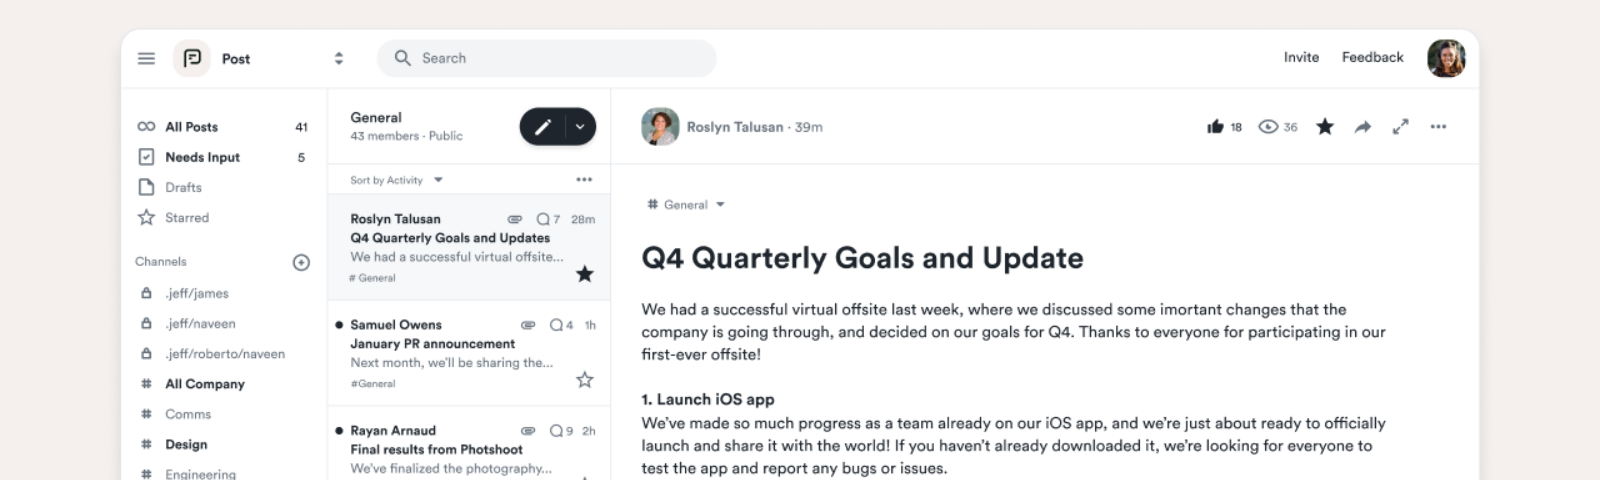 Post is a new tool for team-wide communication.